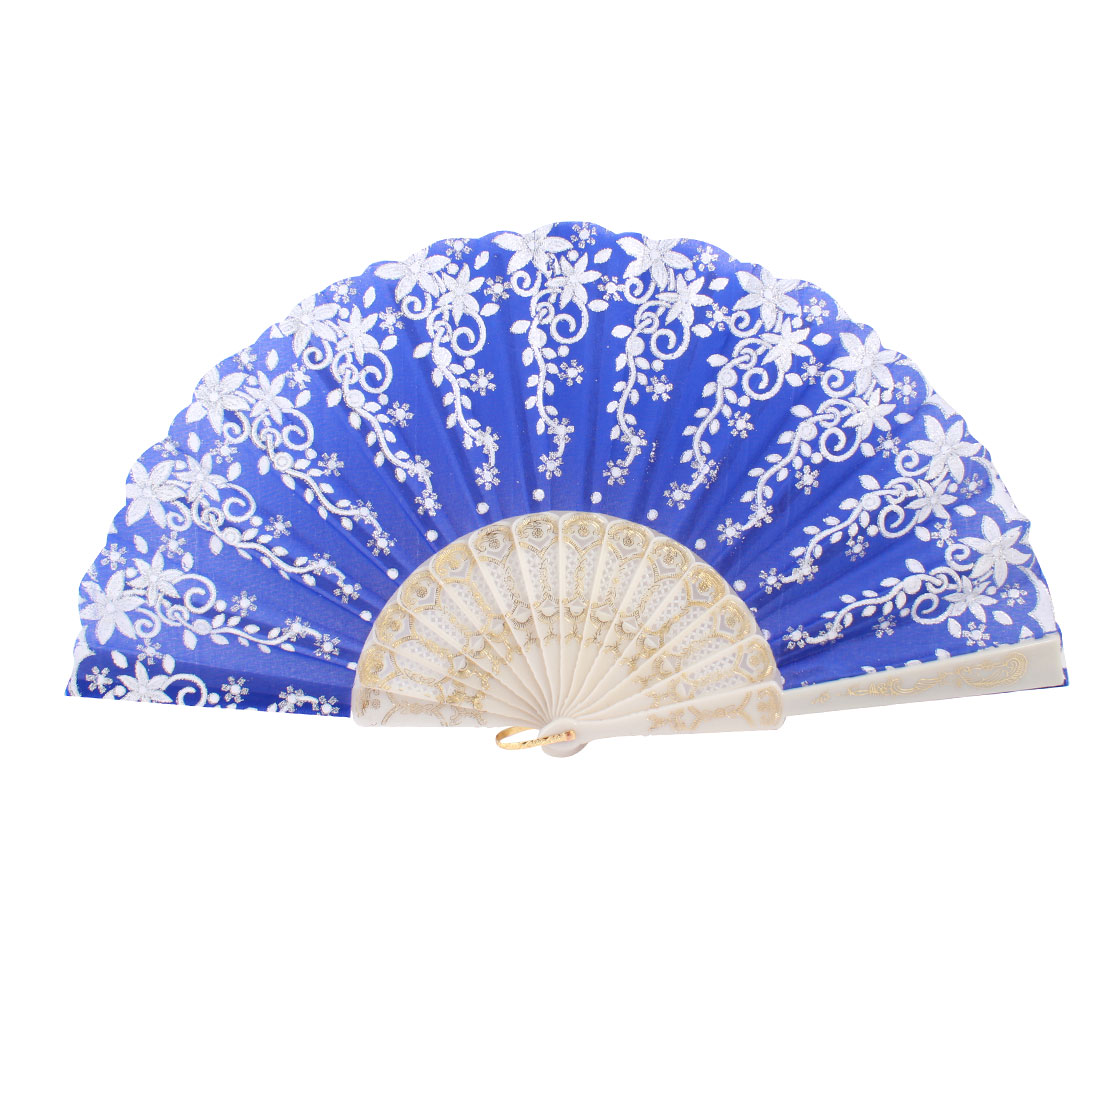 Plastic Frame Silver Tone Glittery Powder Decor Floral Pattern Foldable Hand Fan Blue White